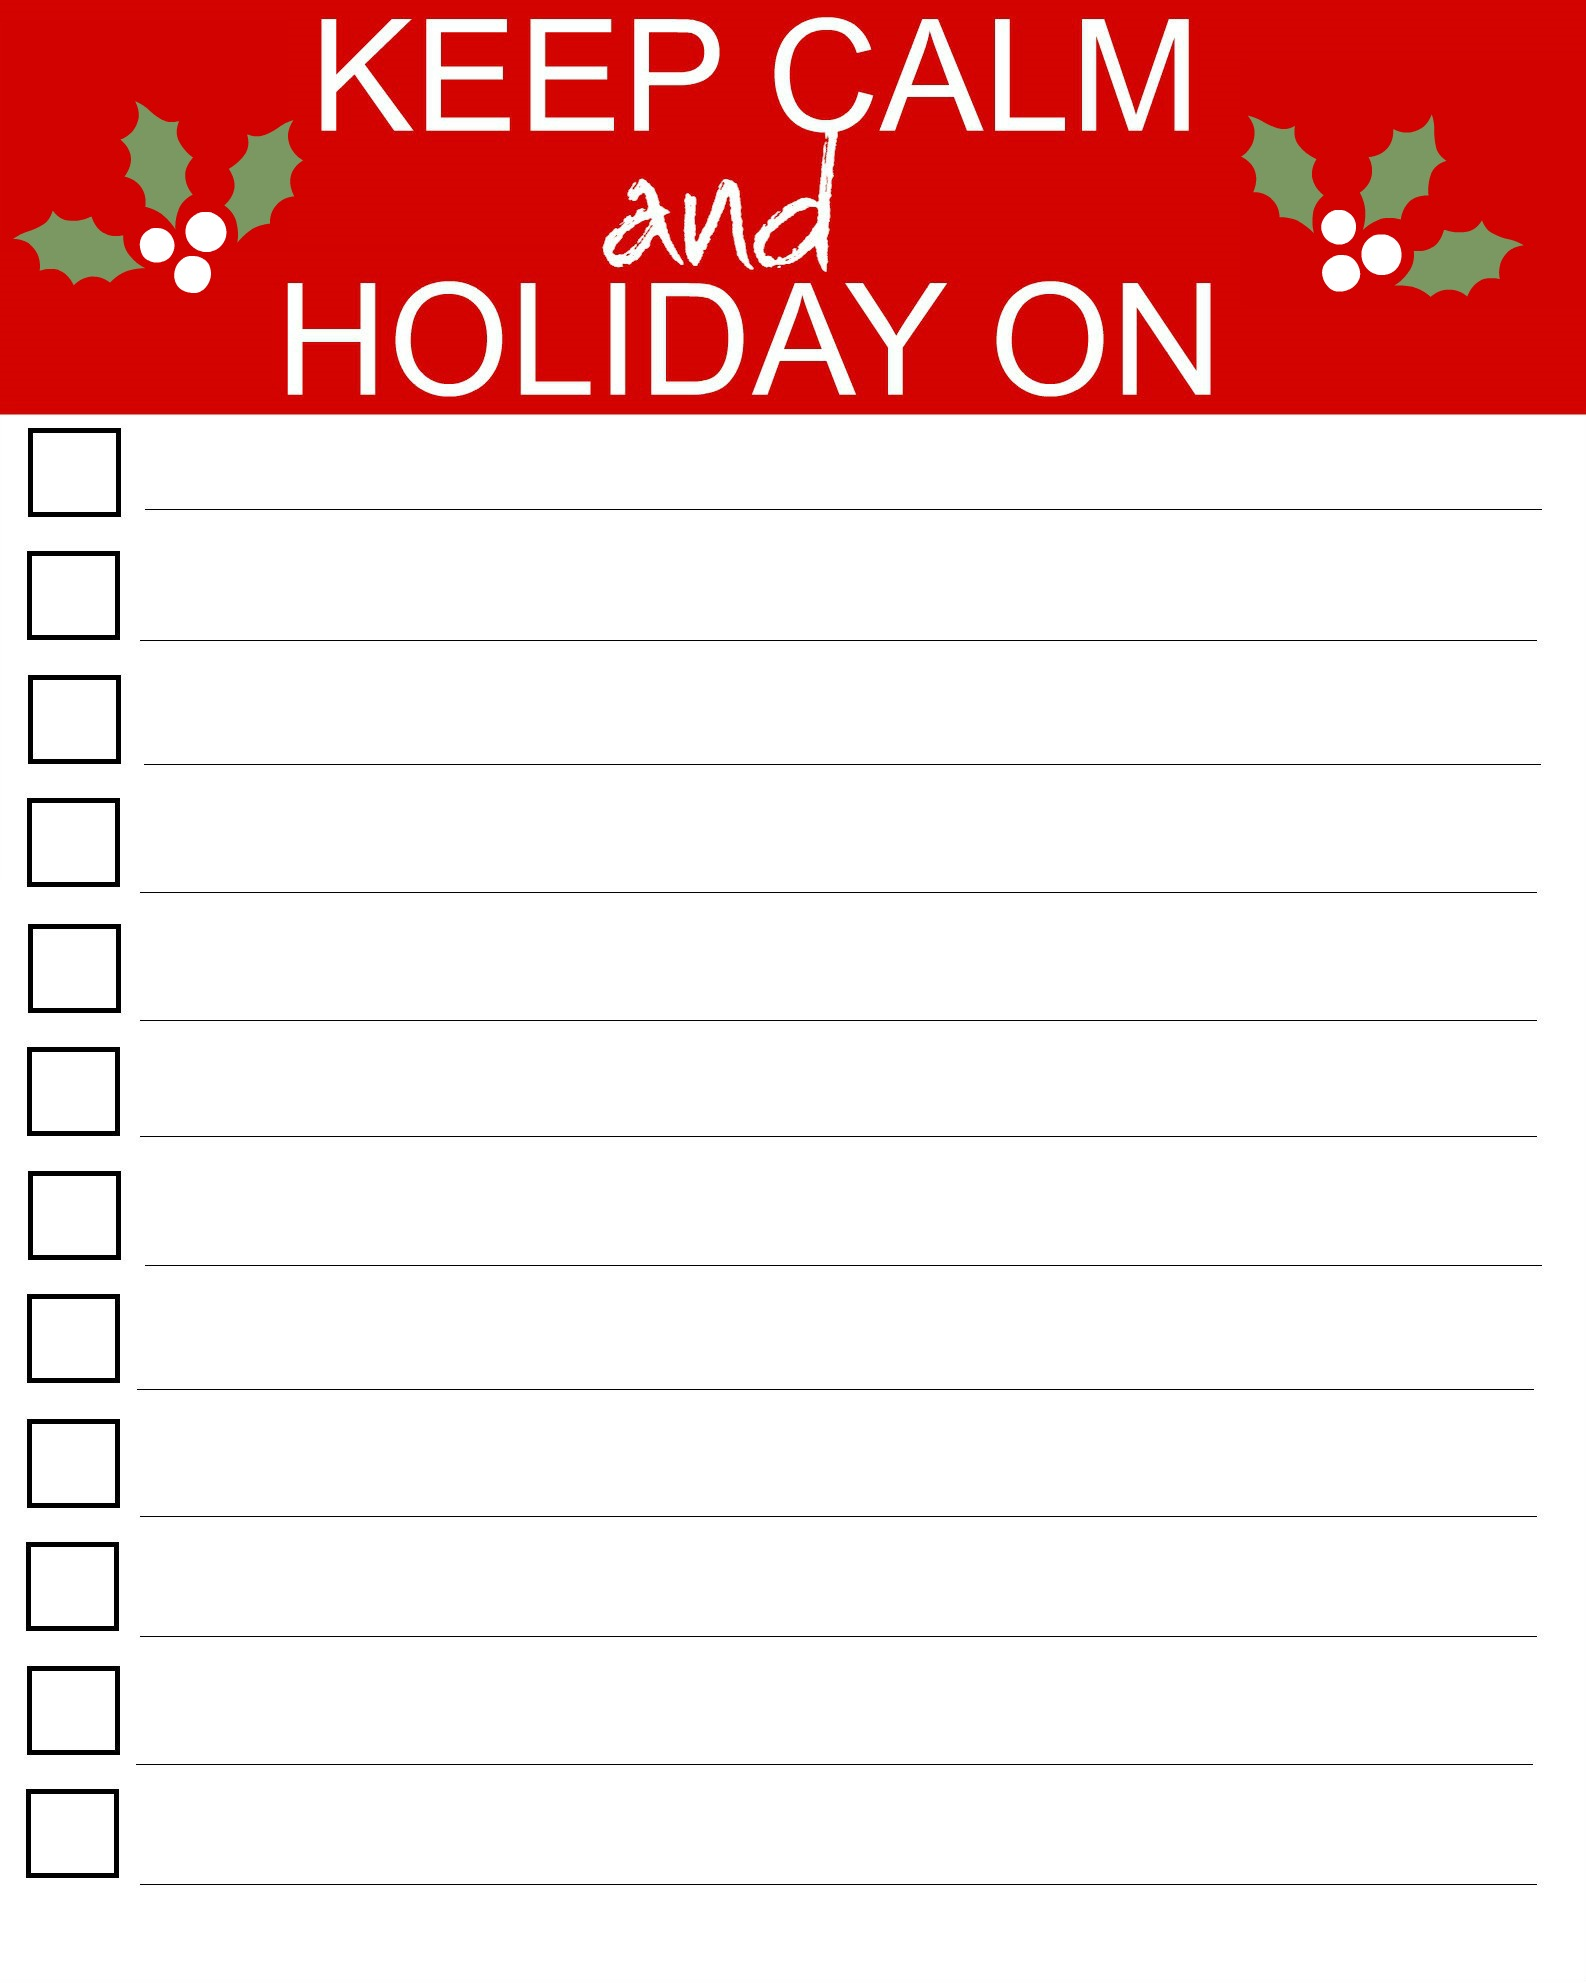 Keep Calm and Holiday On Printable